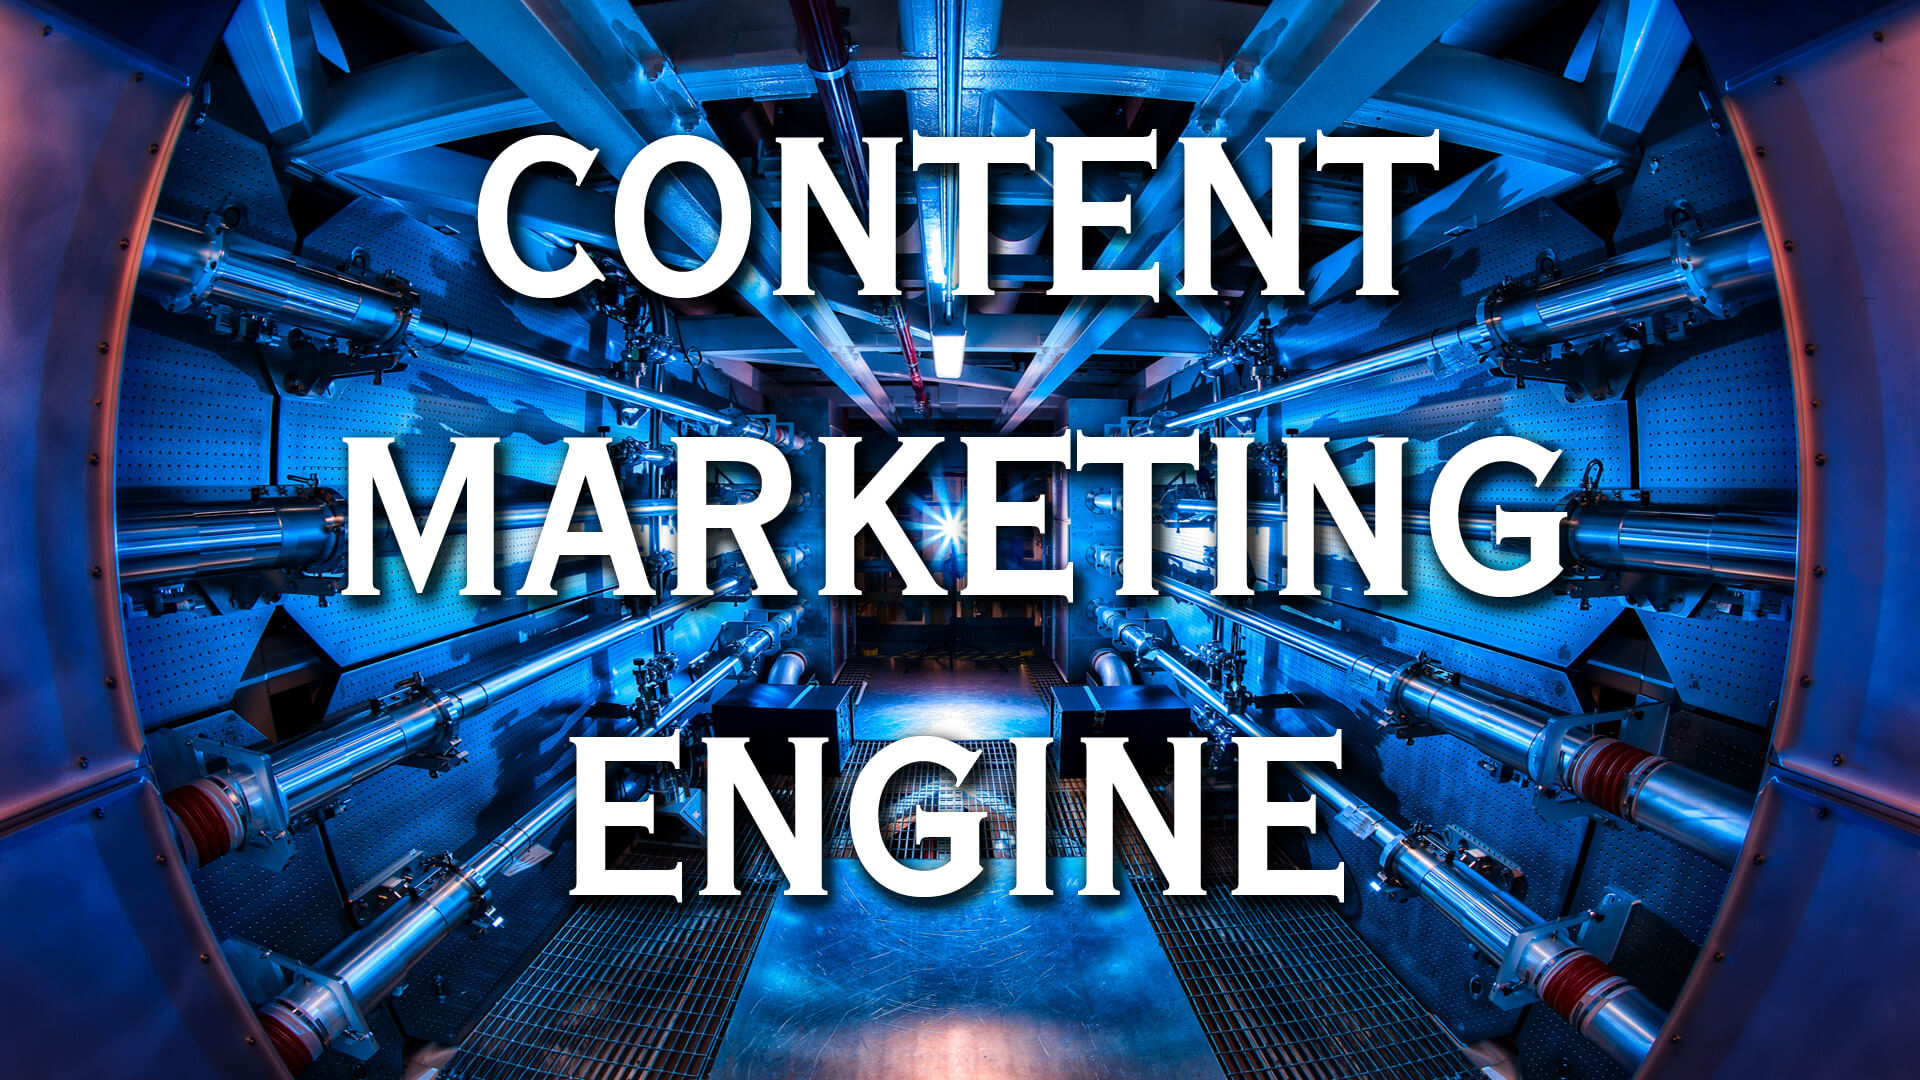 The Content Marketing Engine